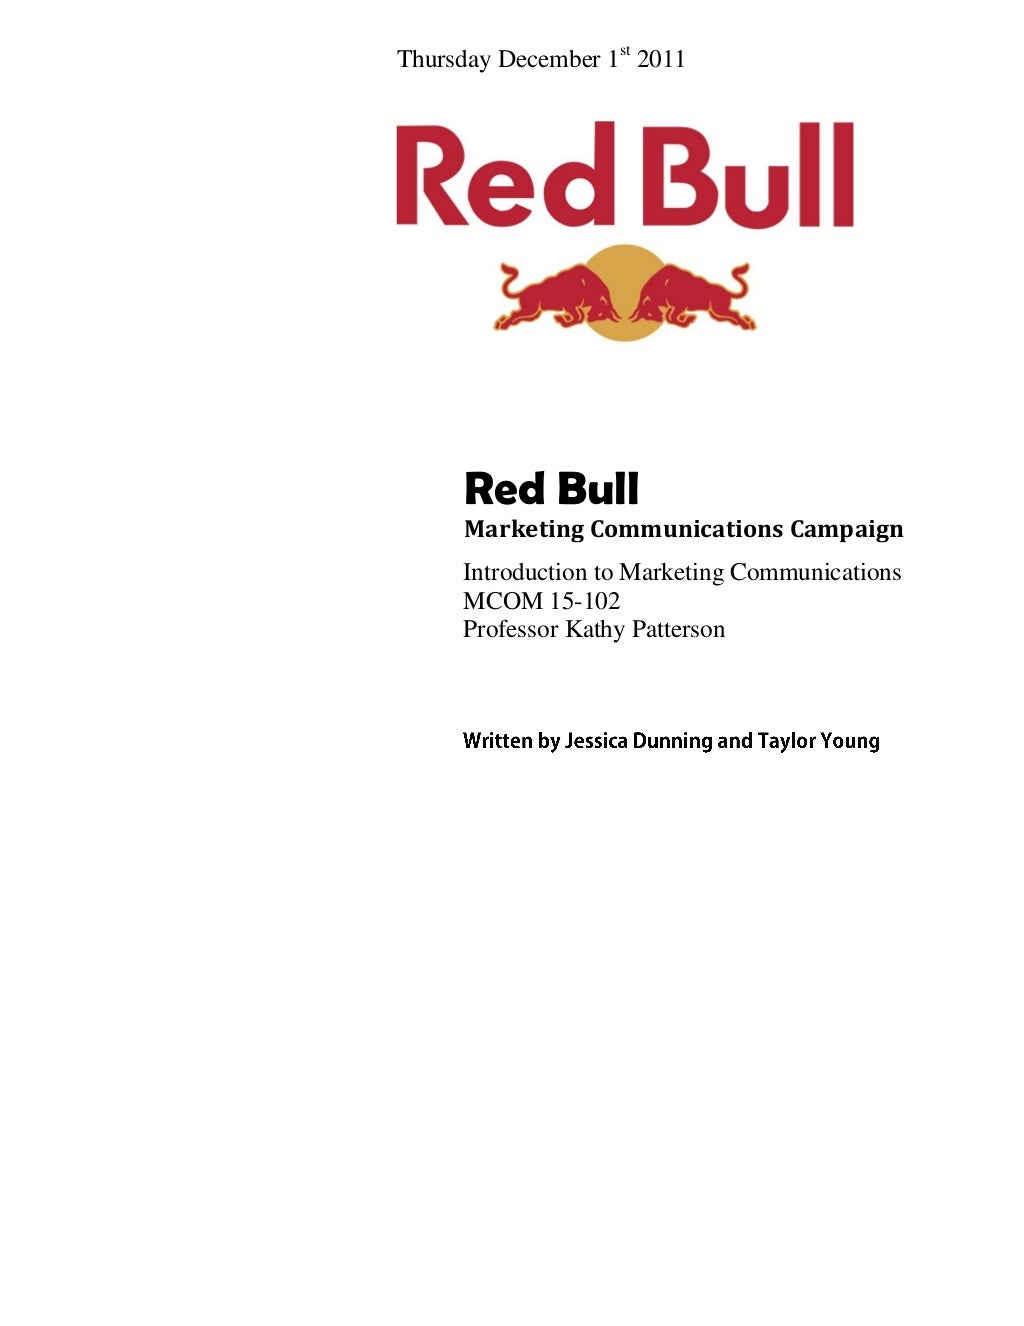 Red Bull Marketing Campaign